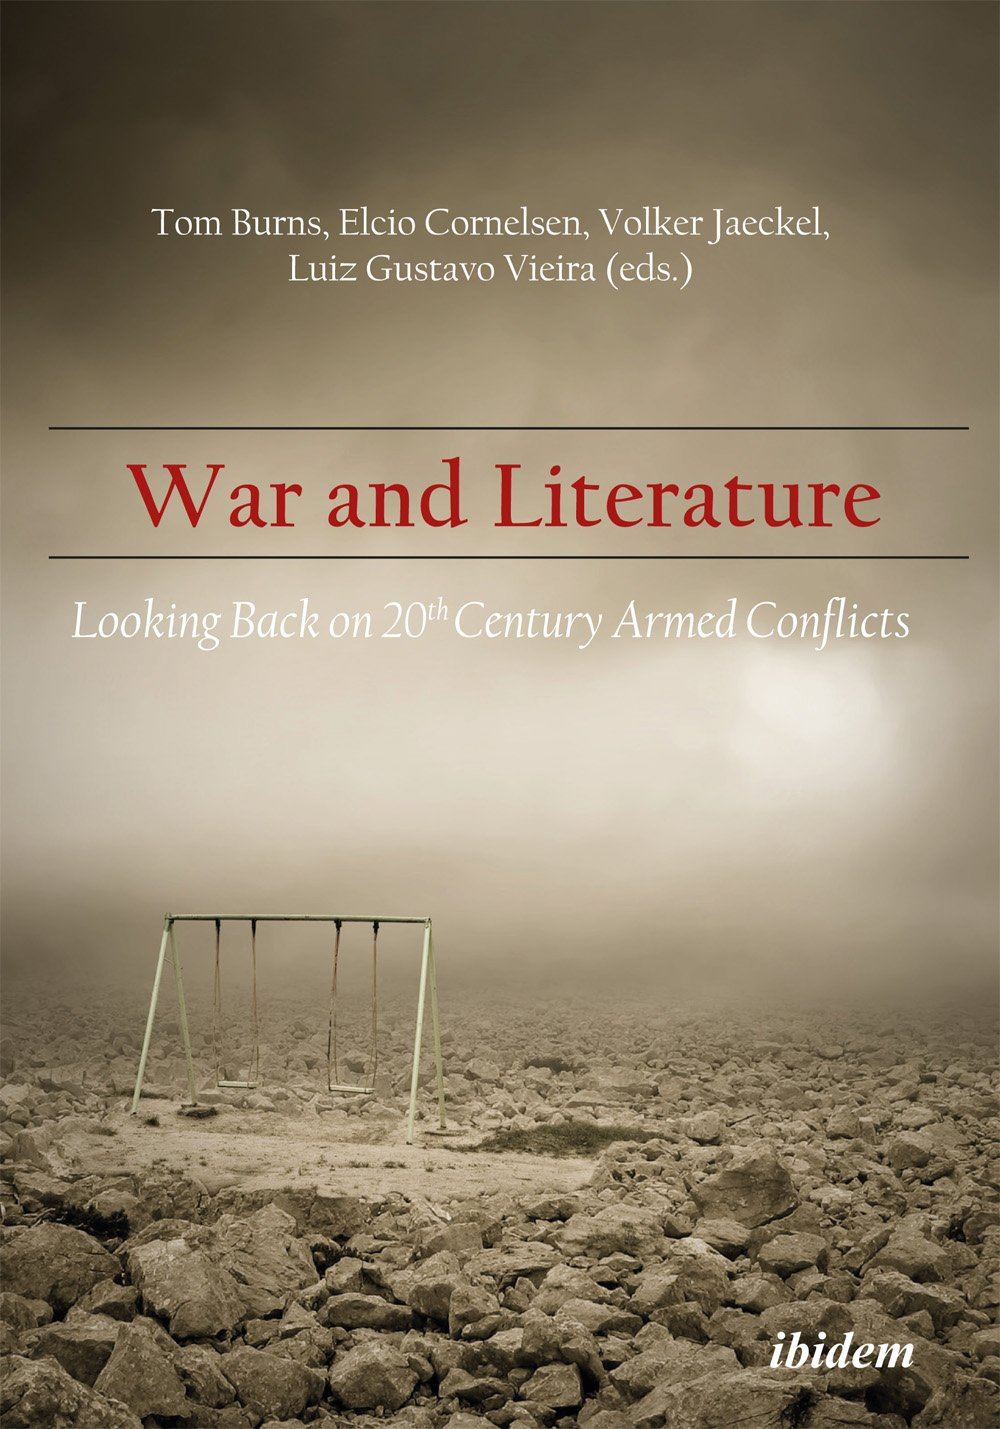 Download War and Literature: Looking Back on 20th Century Armed Conflicts PDF